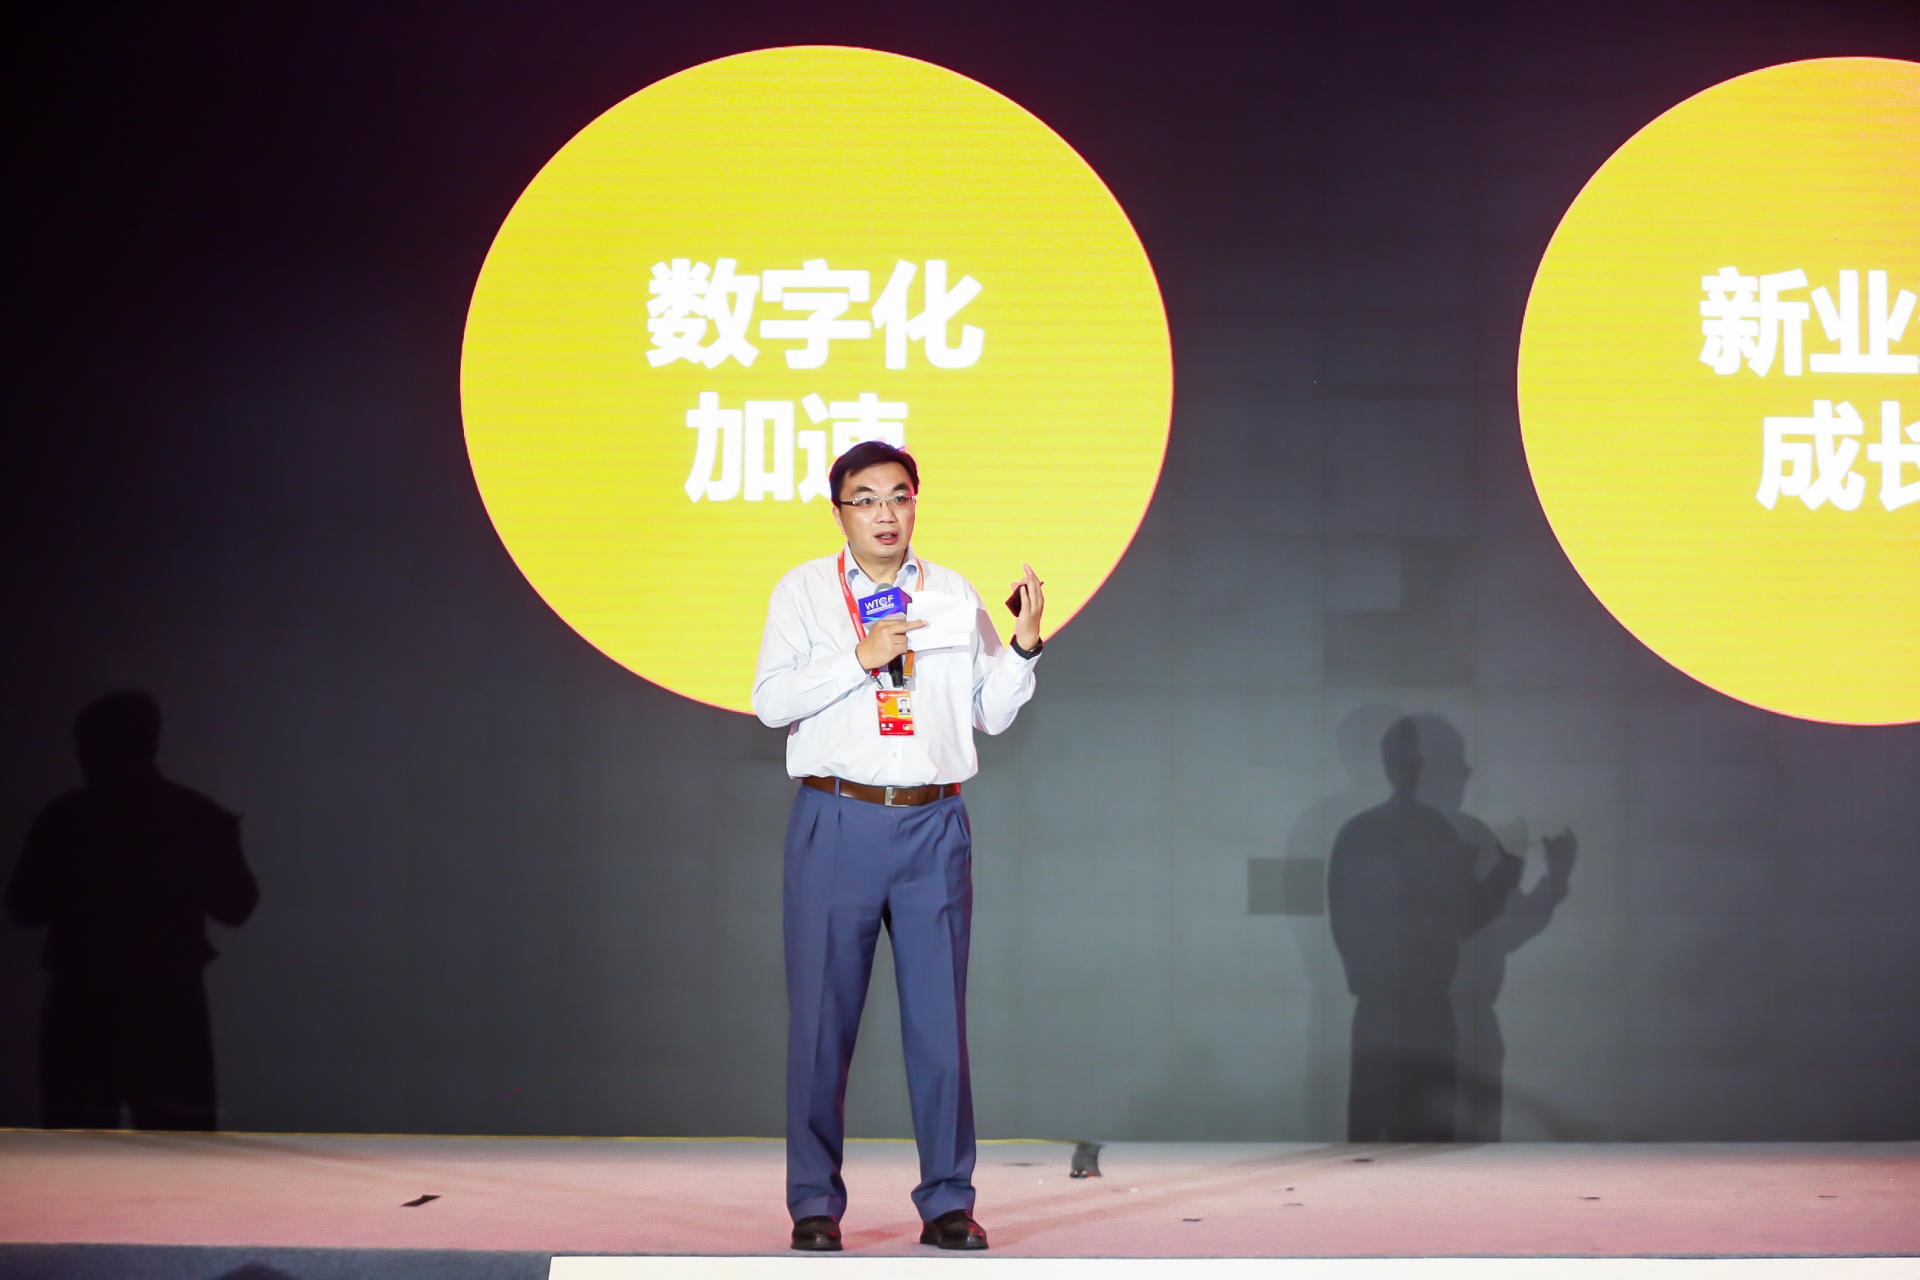 Chang Yang, Vice President of Alibaba Group, is delivering a keynote speech.